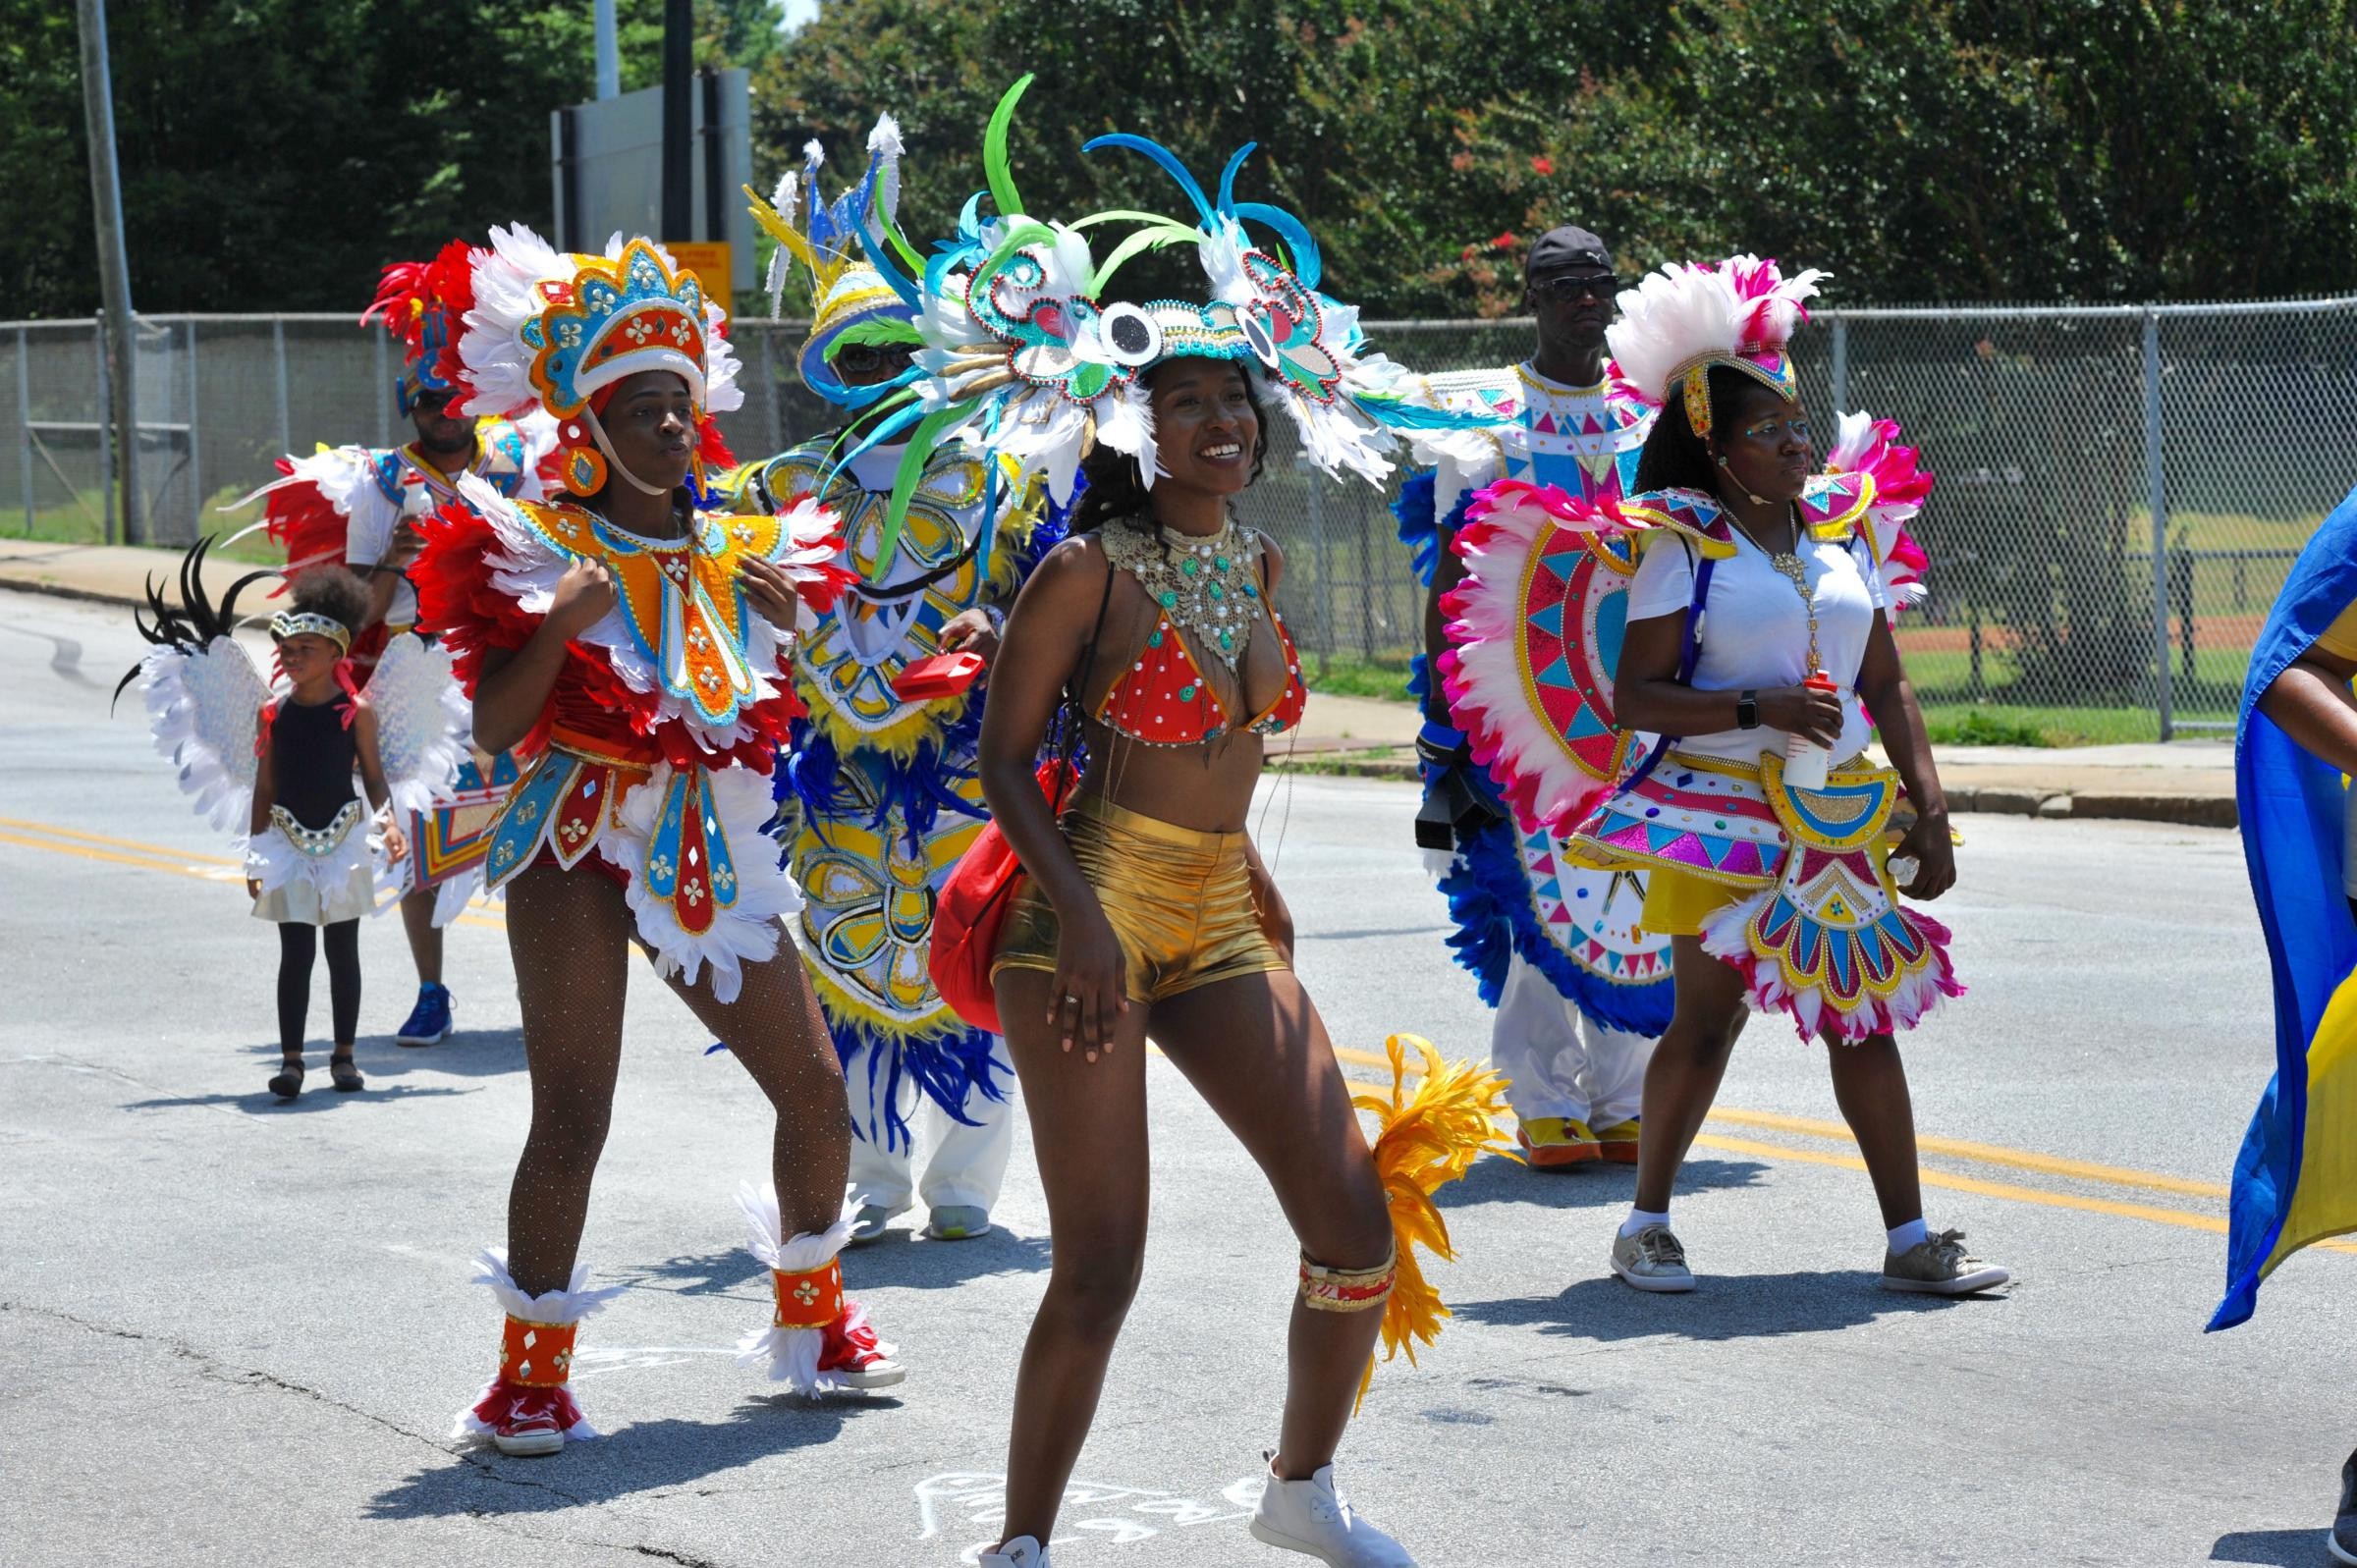 Saturdays Parade Had Many Men And Women Dressed In Afro